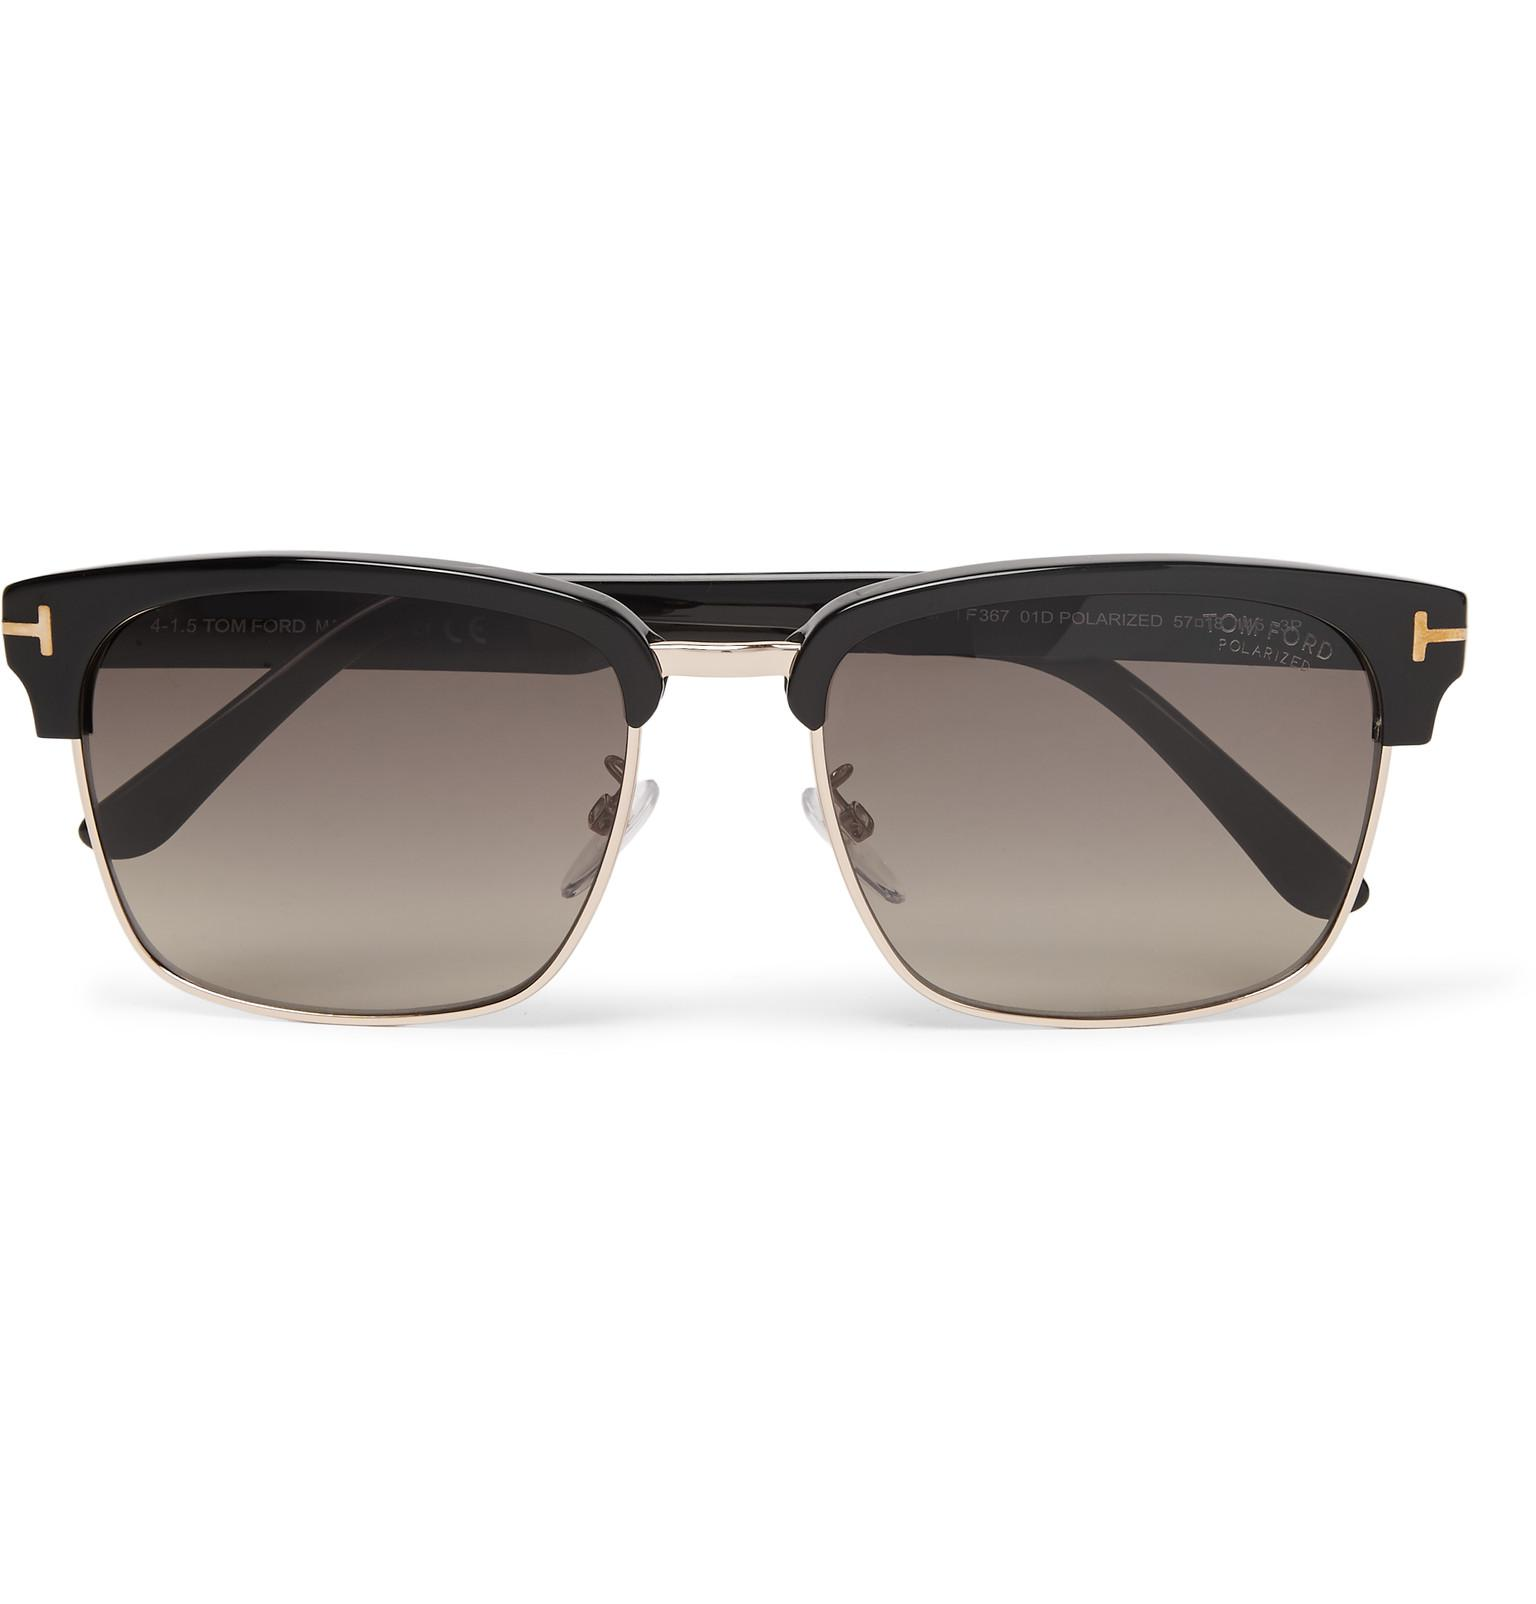 6e40ab1b93b Lyst - Tom Ford River D-frame Acetate And Gold-tone Polarised ...